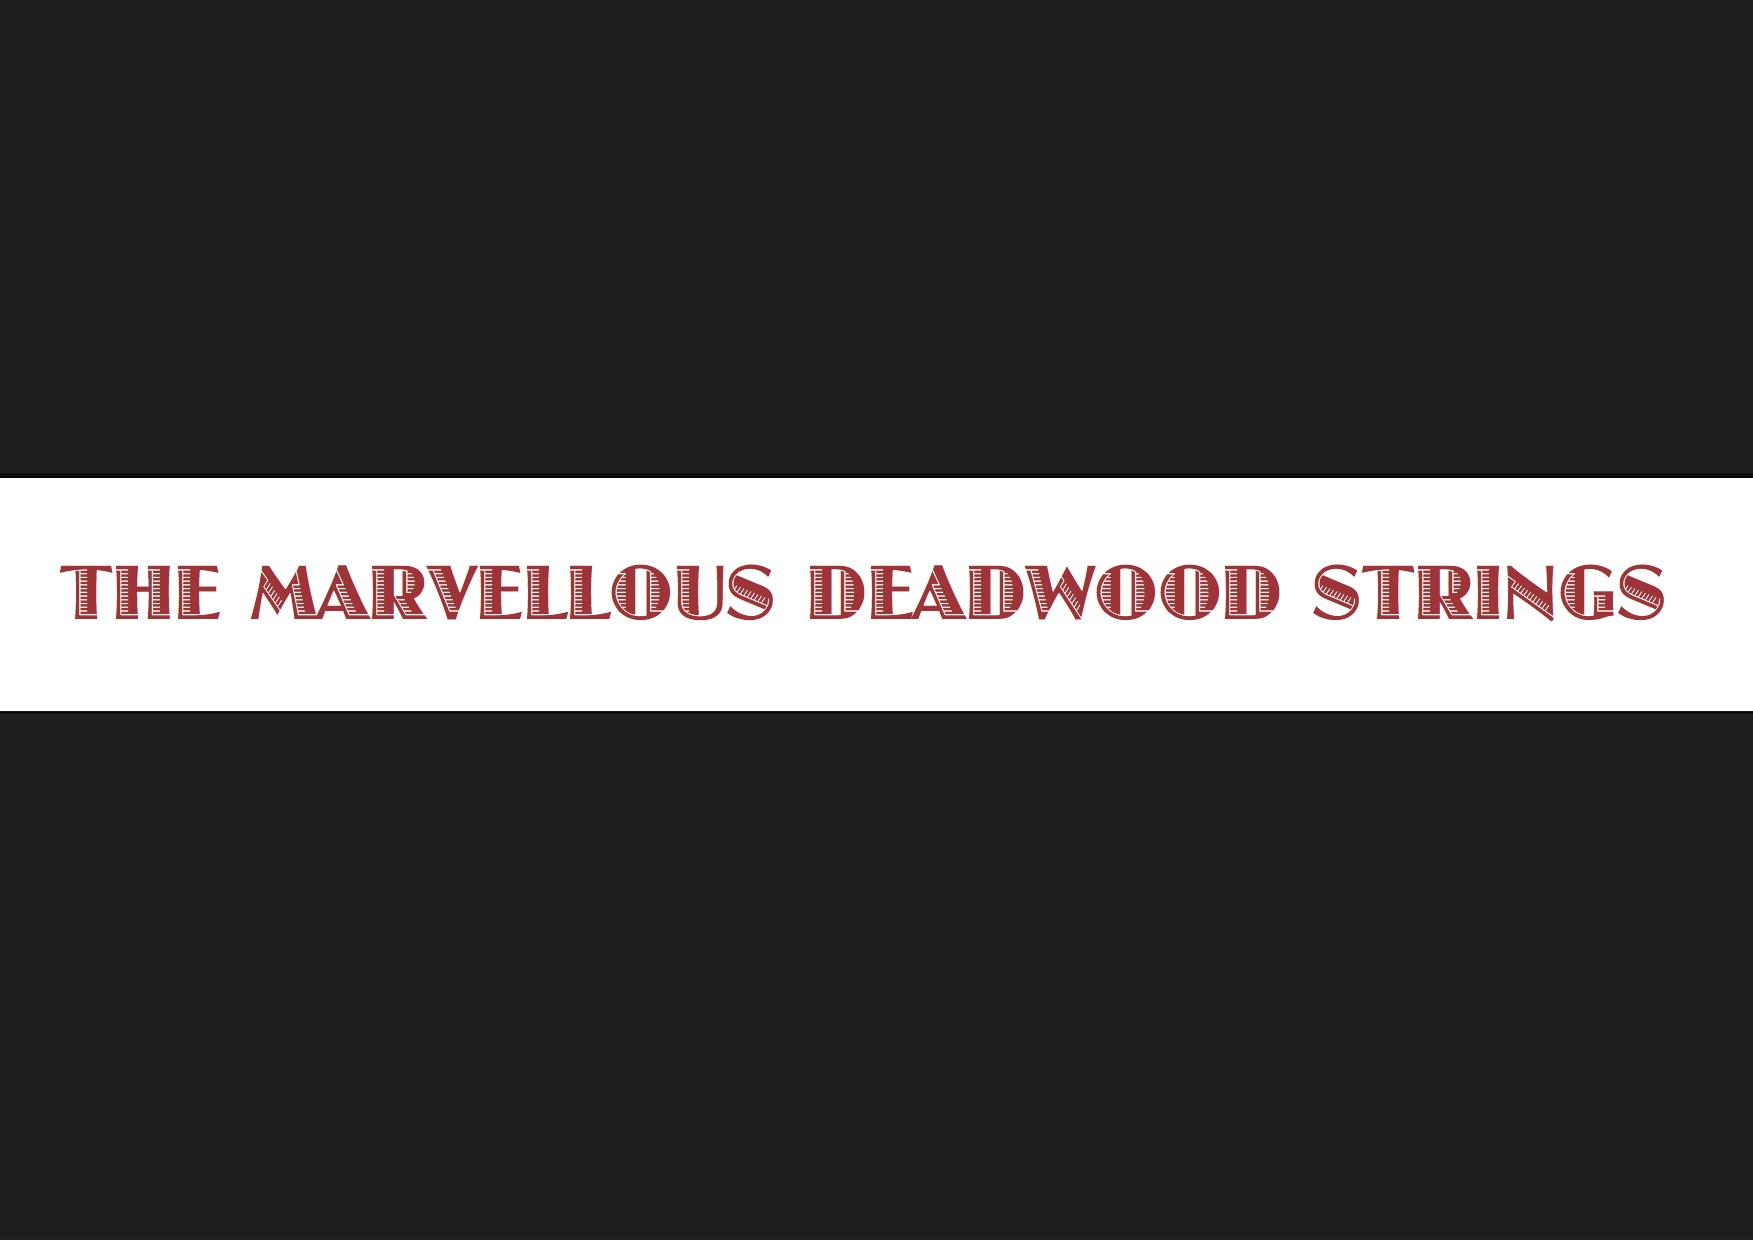 deadwood strings logo